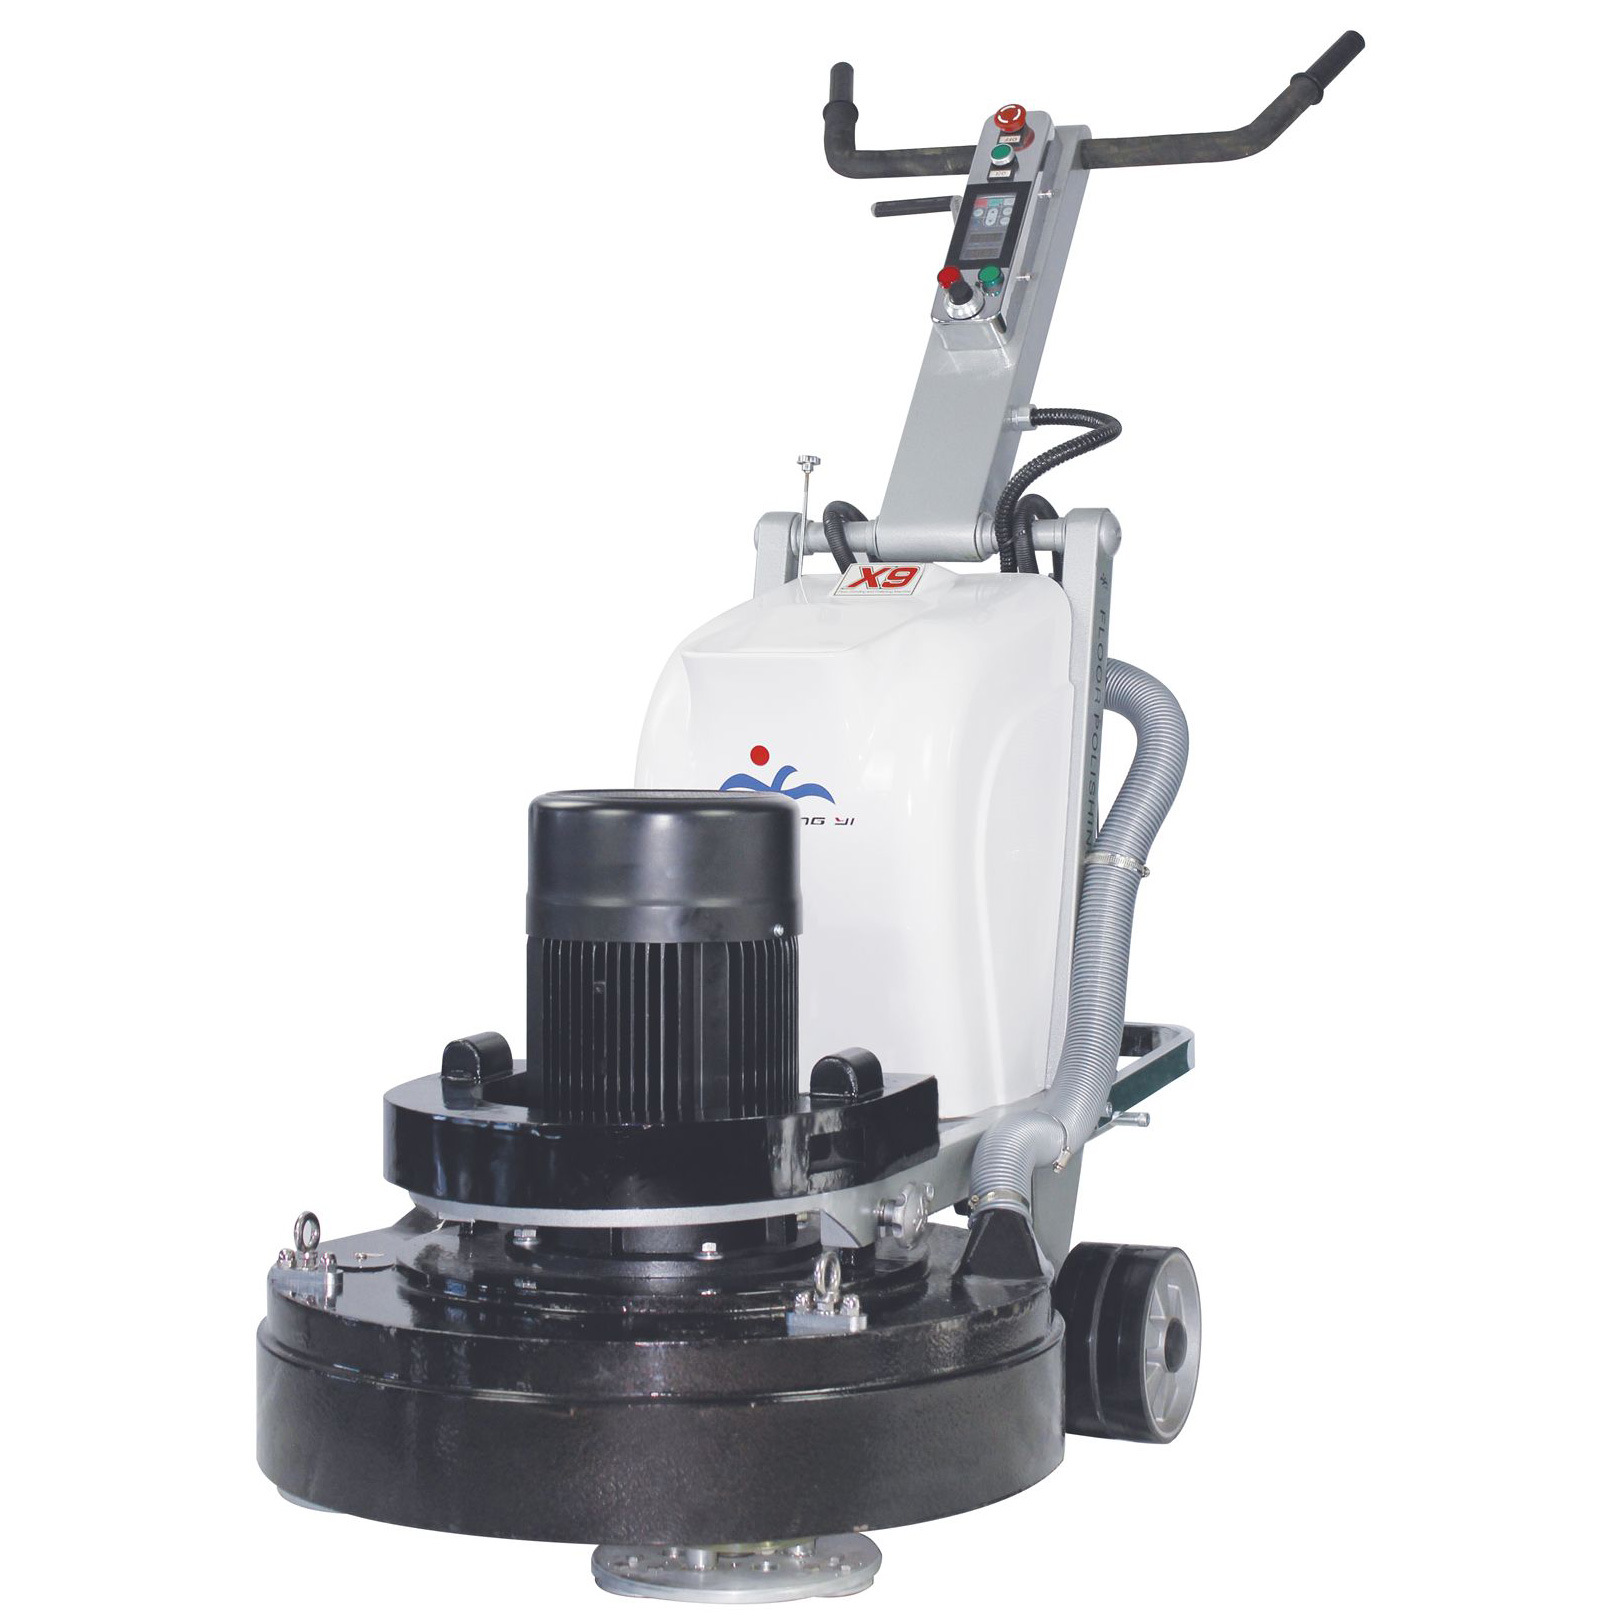 The information is not available right now for Floor grinding machine